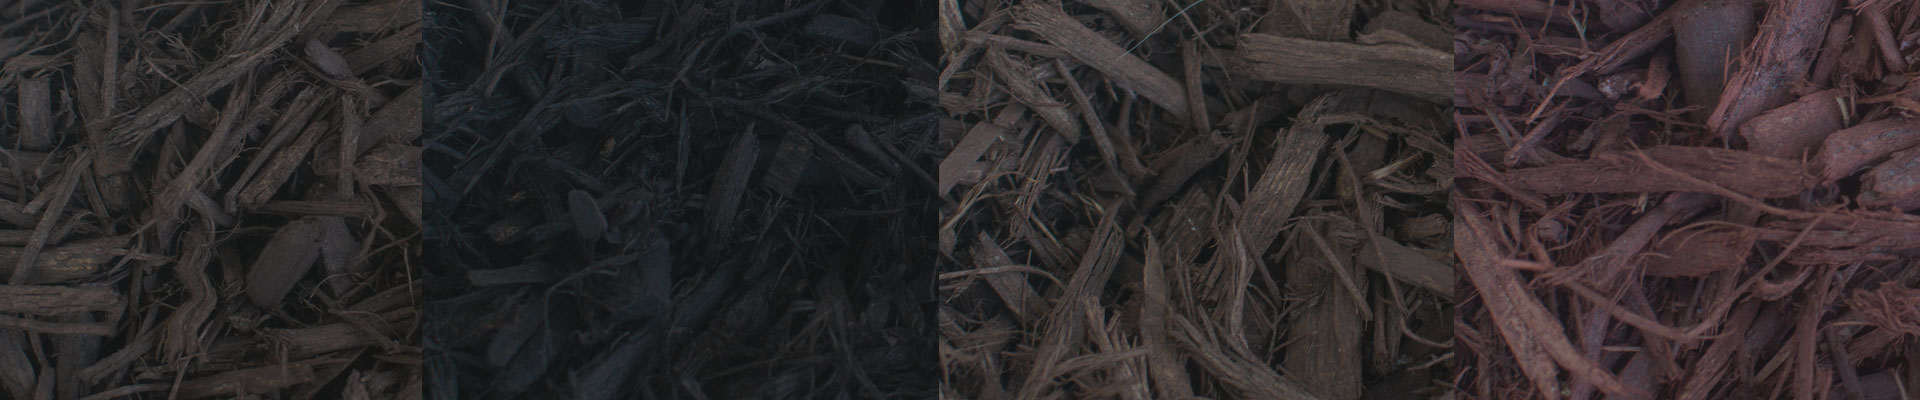 Colored Woodchips banner image